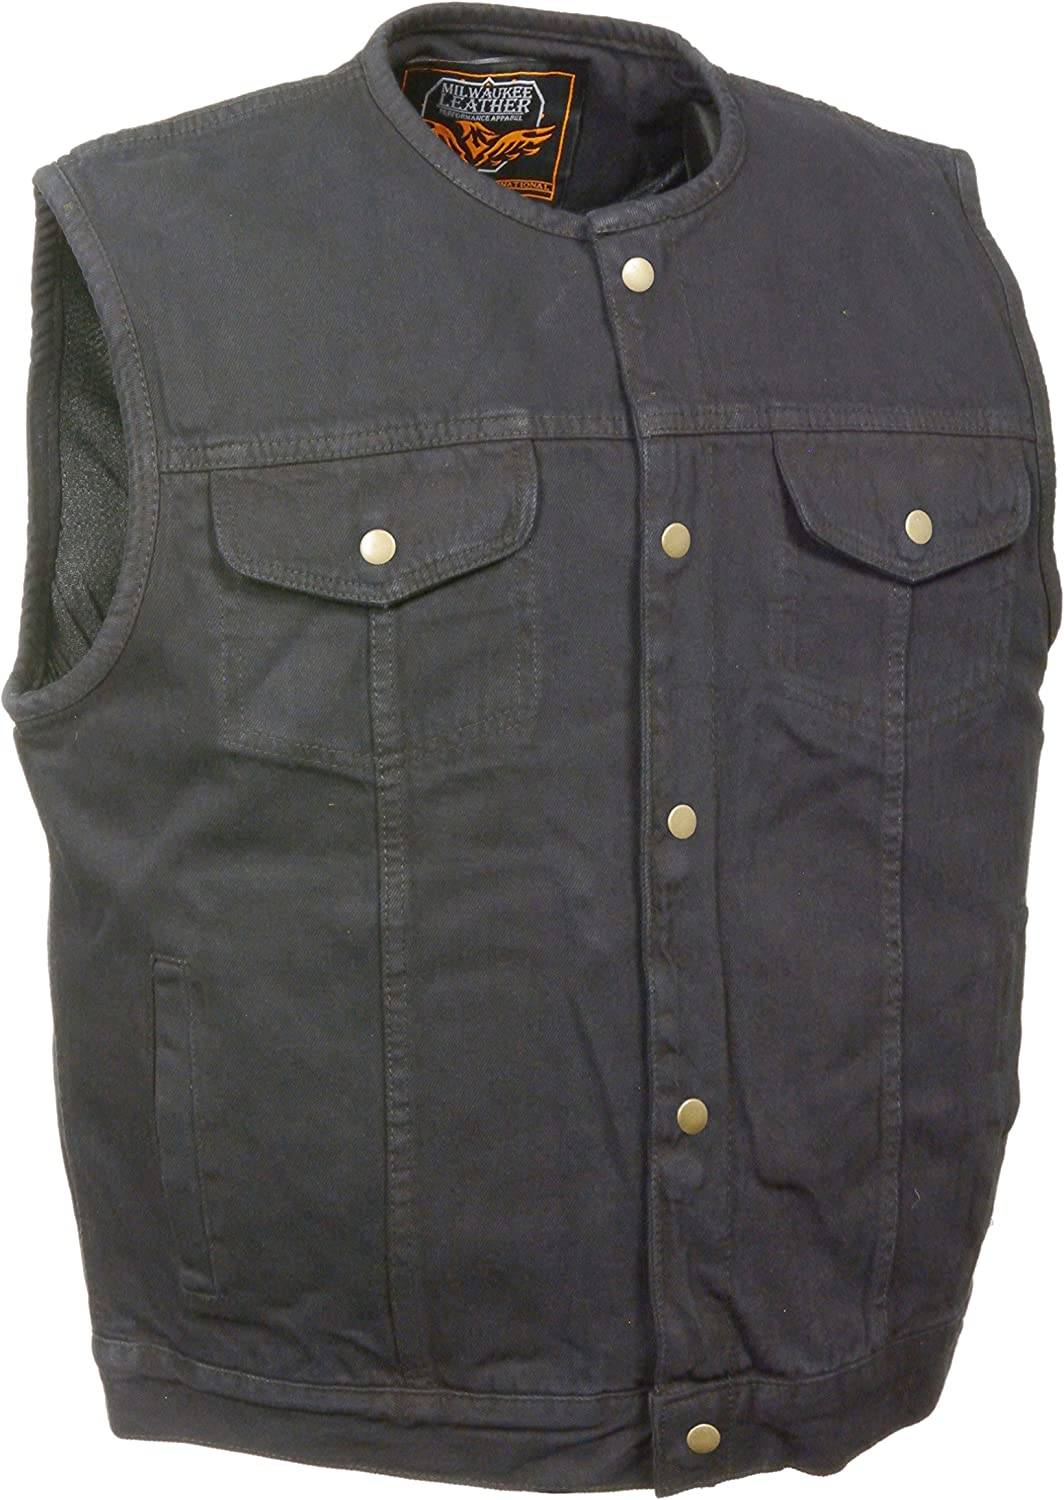 Men's SOA Anarchy Style Denim Vest w/One Inside Concealed Weapon Gun Pockets (Small, Black Collarless)